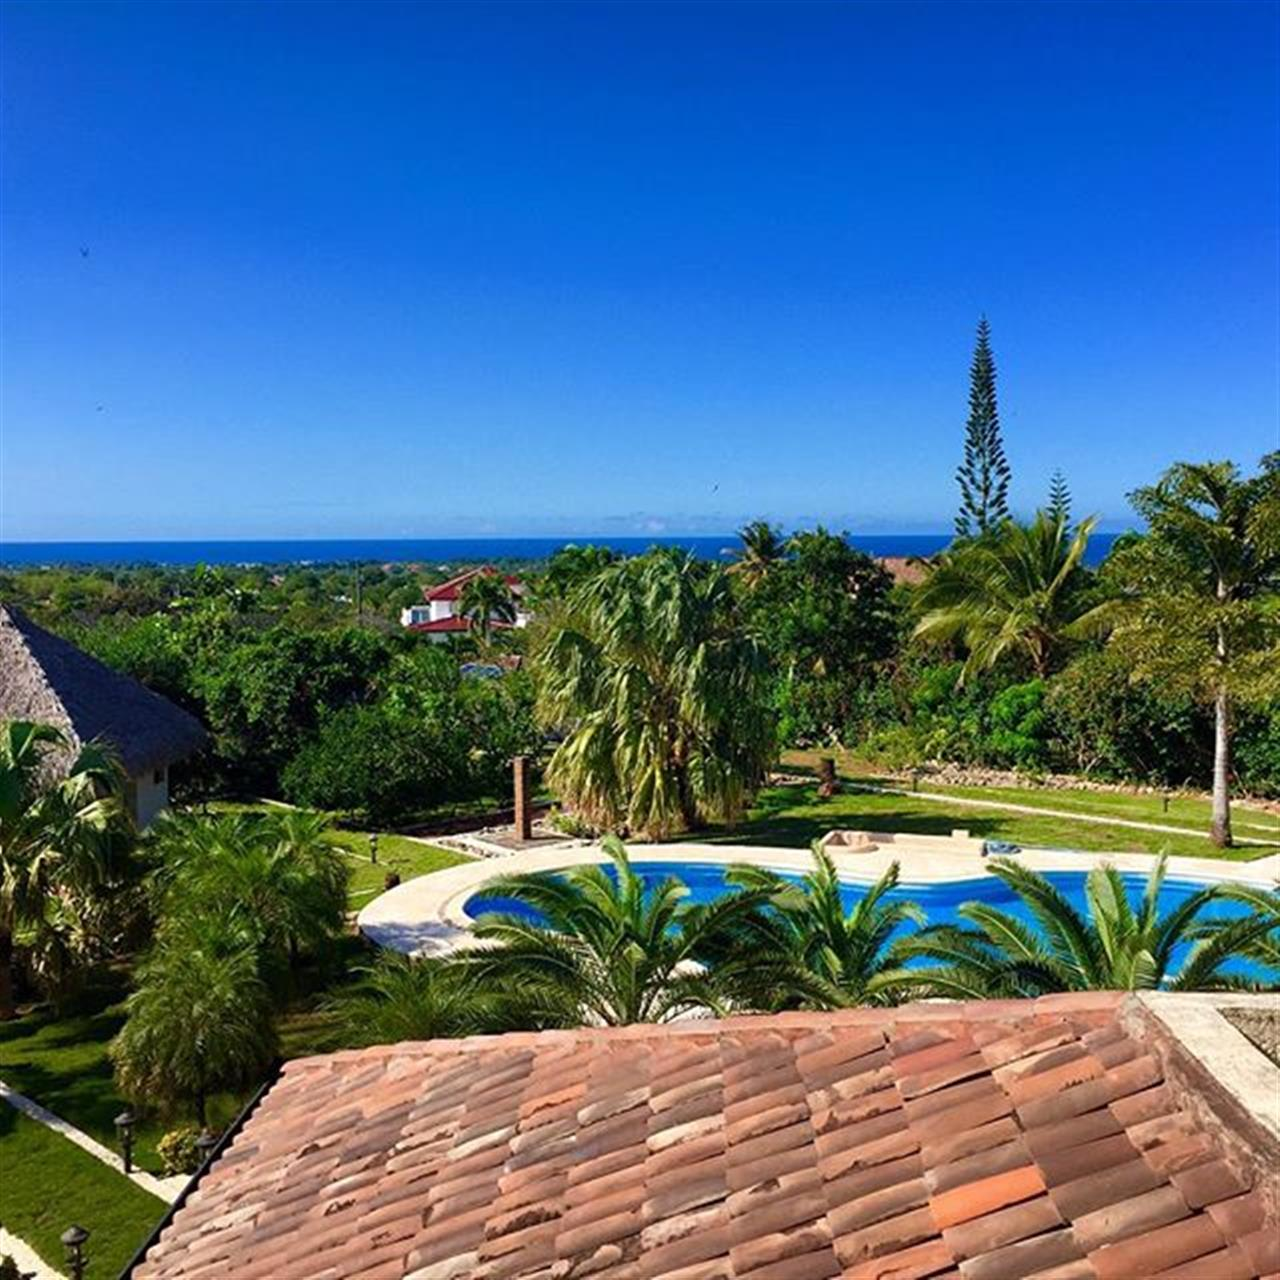 Great ocean views from a private villa in the hills of Sosua - Cabarete. By the way this home is for sale. #DominicanRepublic #oceanviews #lifestyle #blueskys #beach #leadingrelocal #northcoast  www.selectcaribbean.com